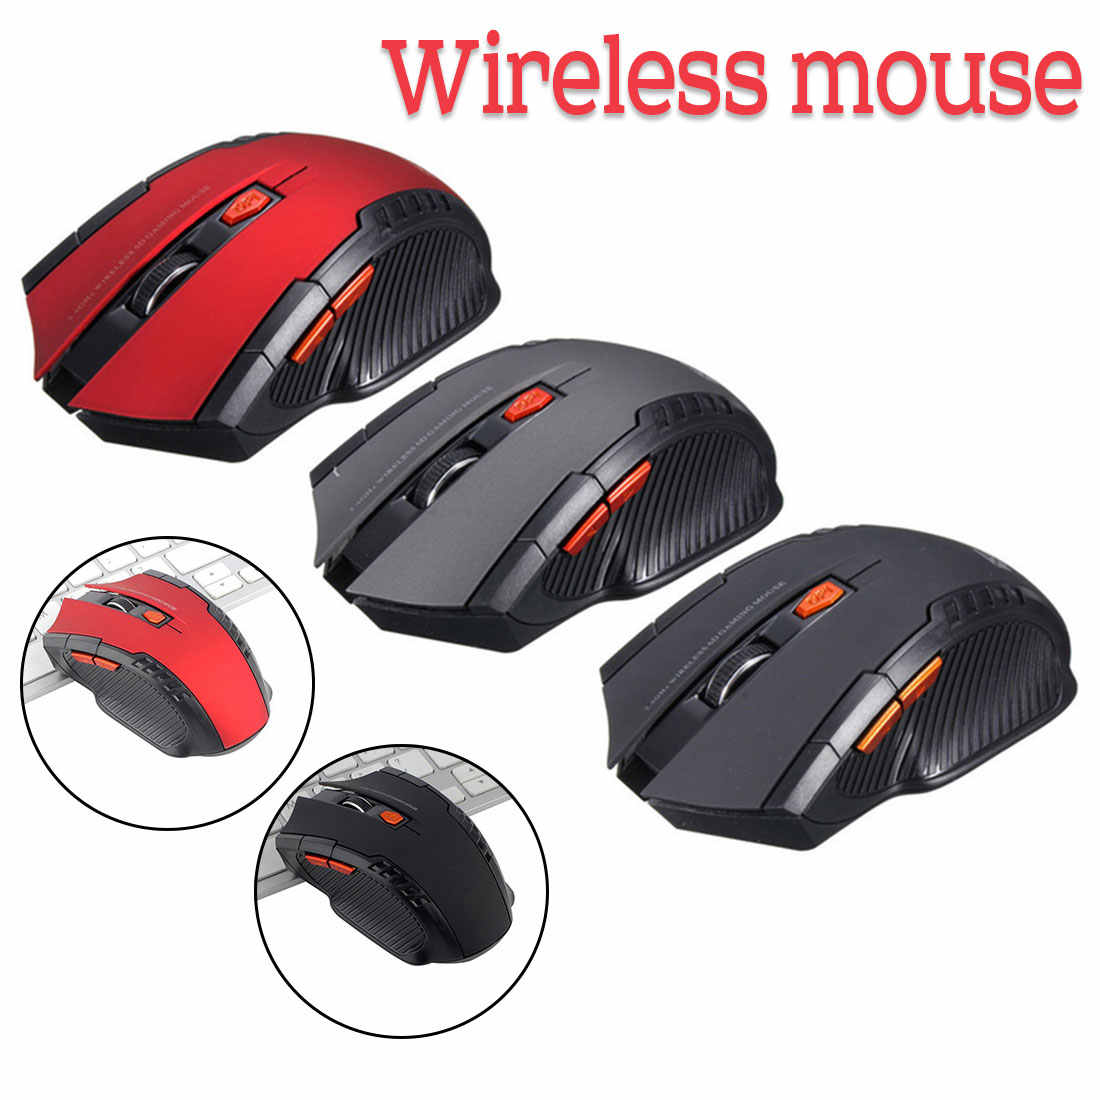 Computer Peripherals 2.4ghzmini mouse computer mouse hand game wireless mouse Au6 wireless gaming mouse